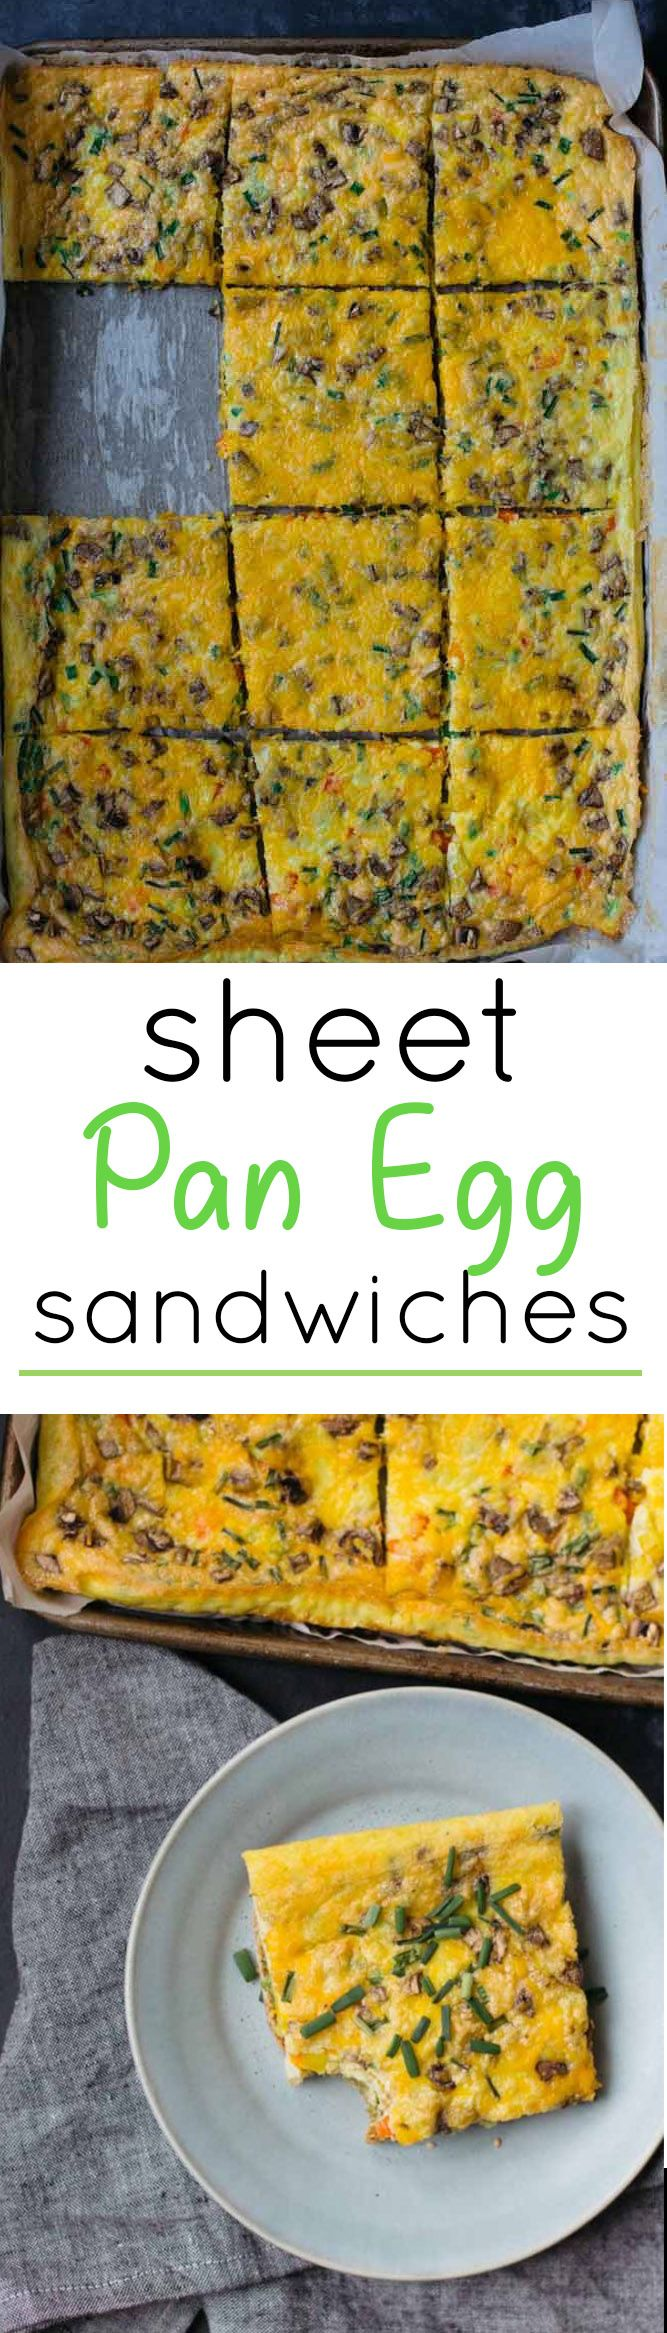 These Sheet Pan Egg Sandwiches are a great way to cook a breakfast meal for a large crowd using just your oven - it's fast, easy and delicious! You can customize your own toppings as you like!